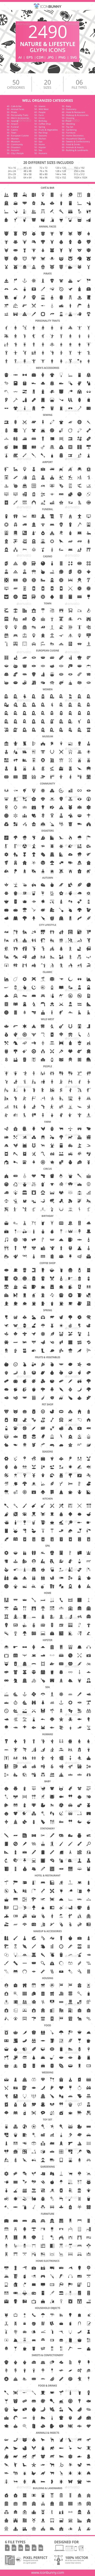 2490 Nature & Lifestyle Glyph Icons — Vector EPS #cocktail #crown • Available here ➝ https://graphicriver.net/item/2490-nature-lifestyle-glyph-icons/21112830?ref=rabosch